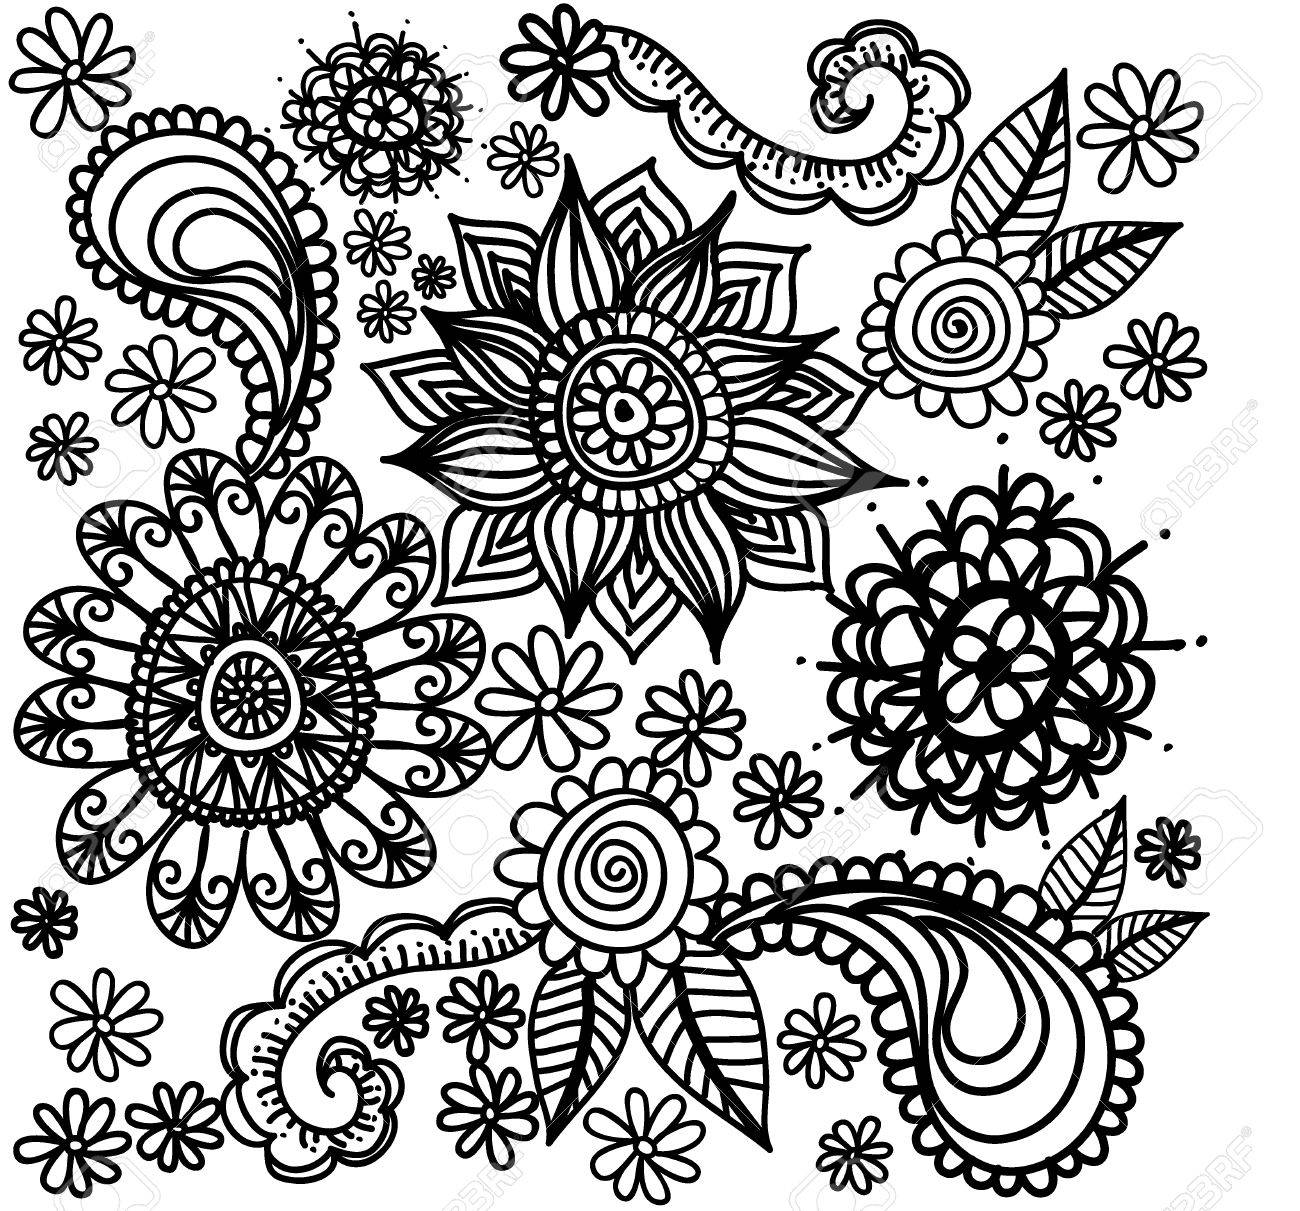 Coloring Book Page For Adult Doodle Floral Pattern Very Interesting And Relaxing Job Children Adults Zen Tangle Drawing